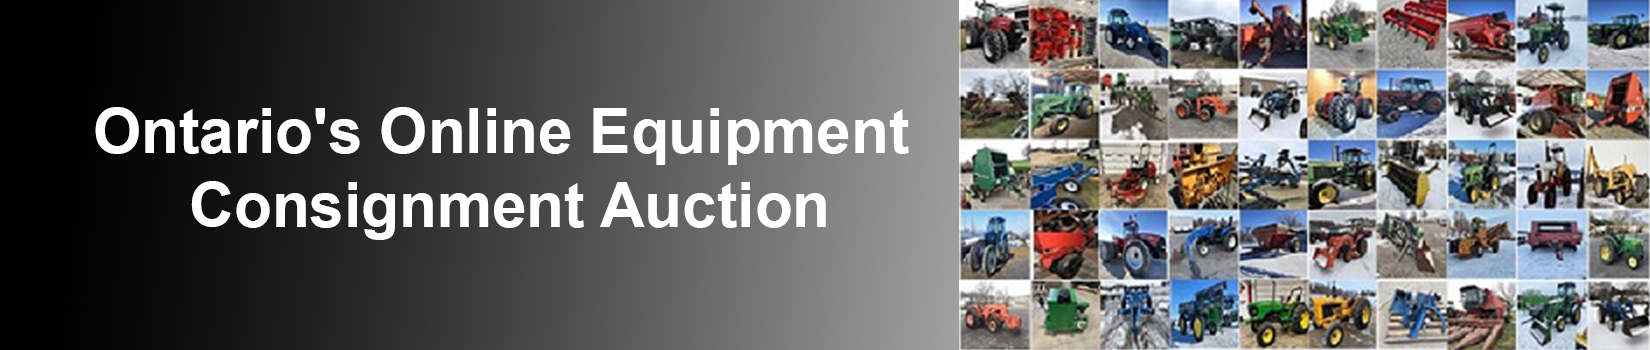 Ontario's Online Equipment Consignment Auctions